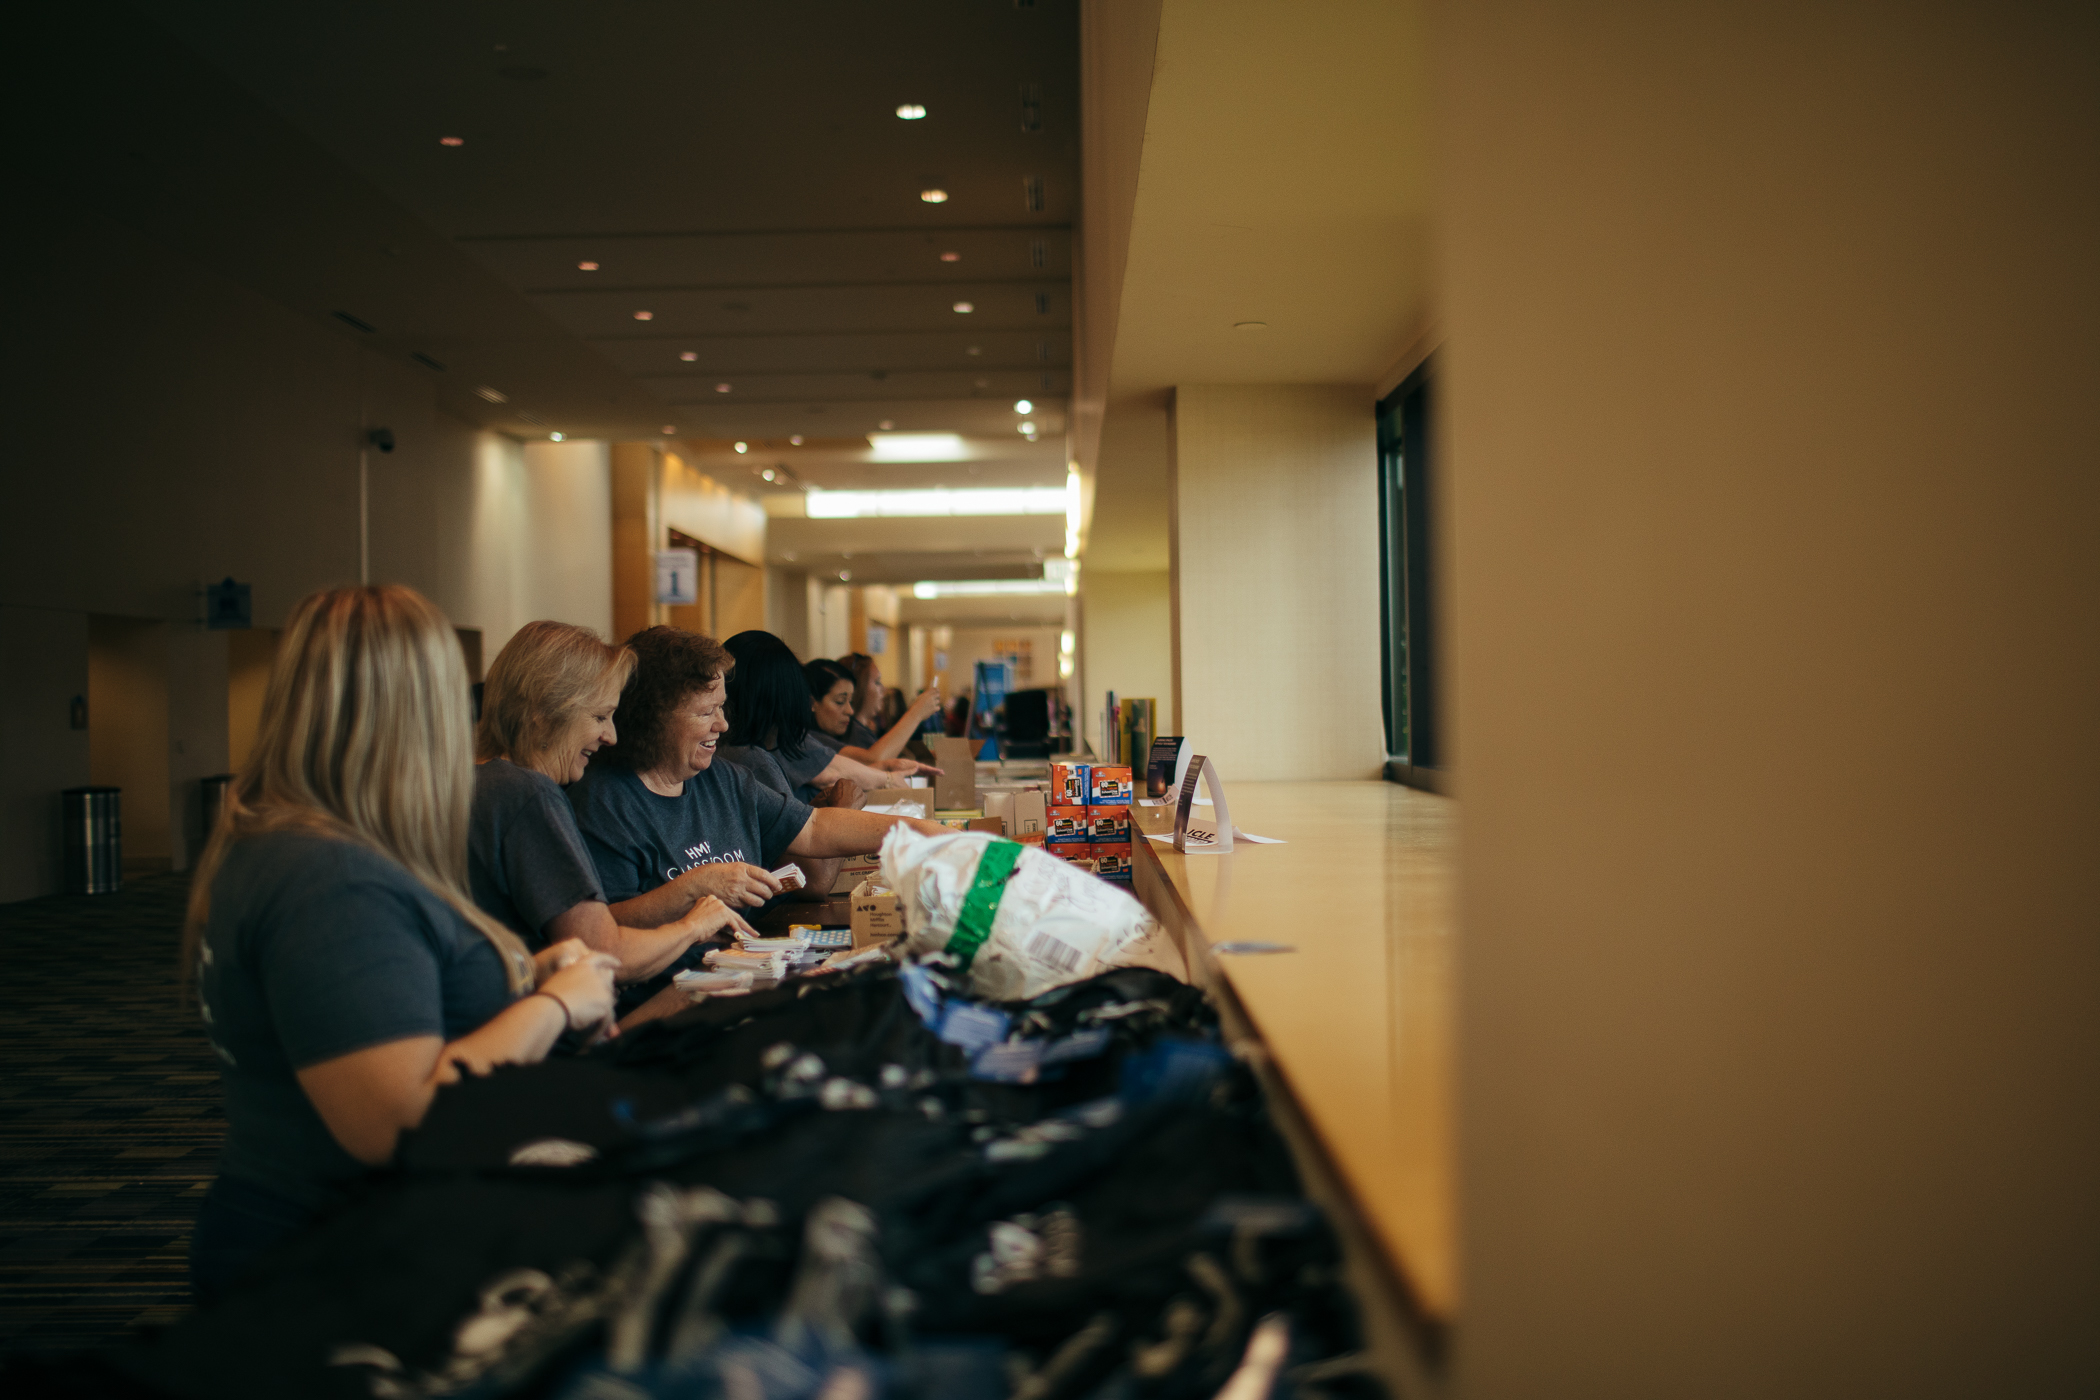 live event commercial photography brand storytelling for education florida conference photographer ©2018abigailbobophotography-114.jpg